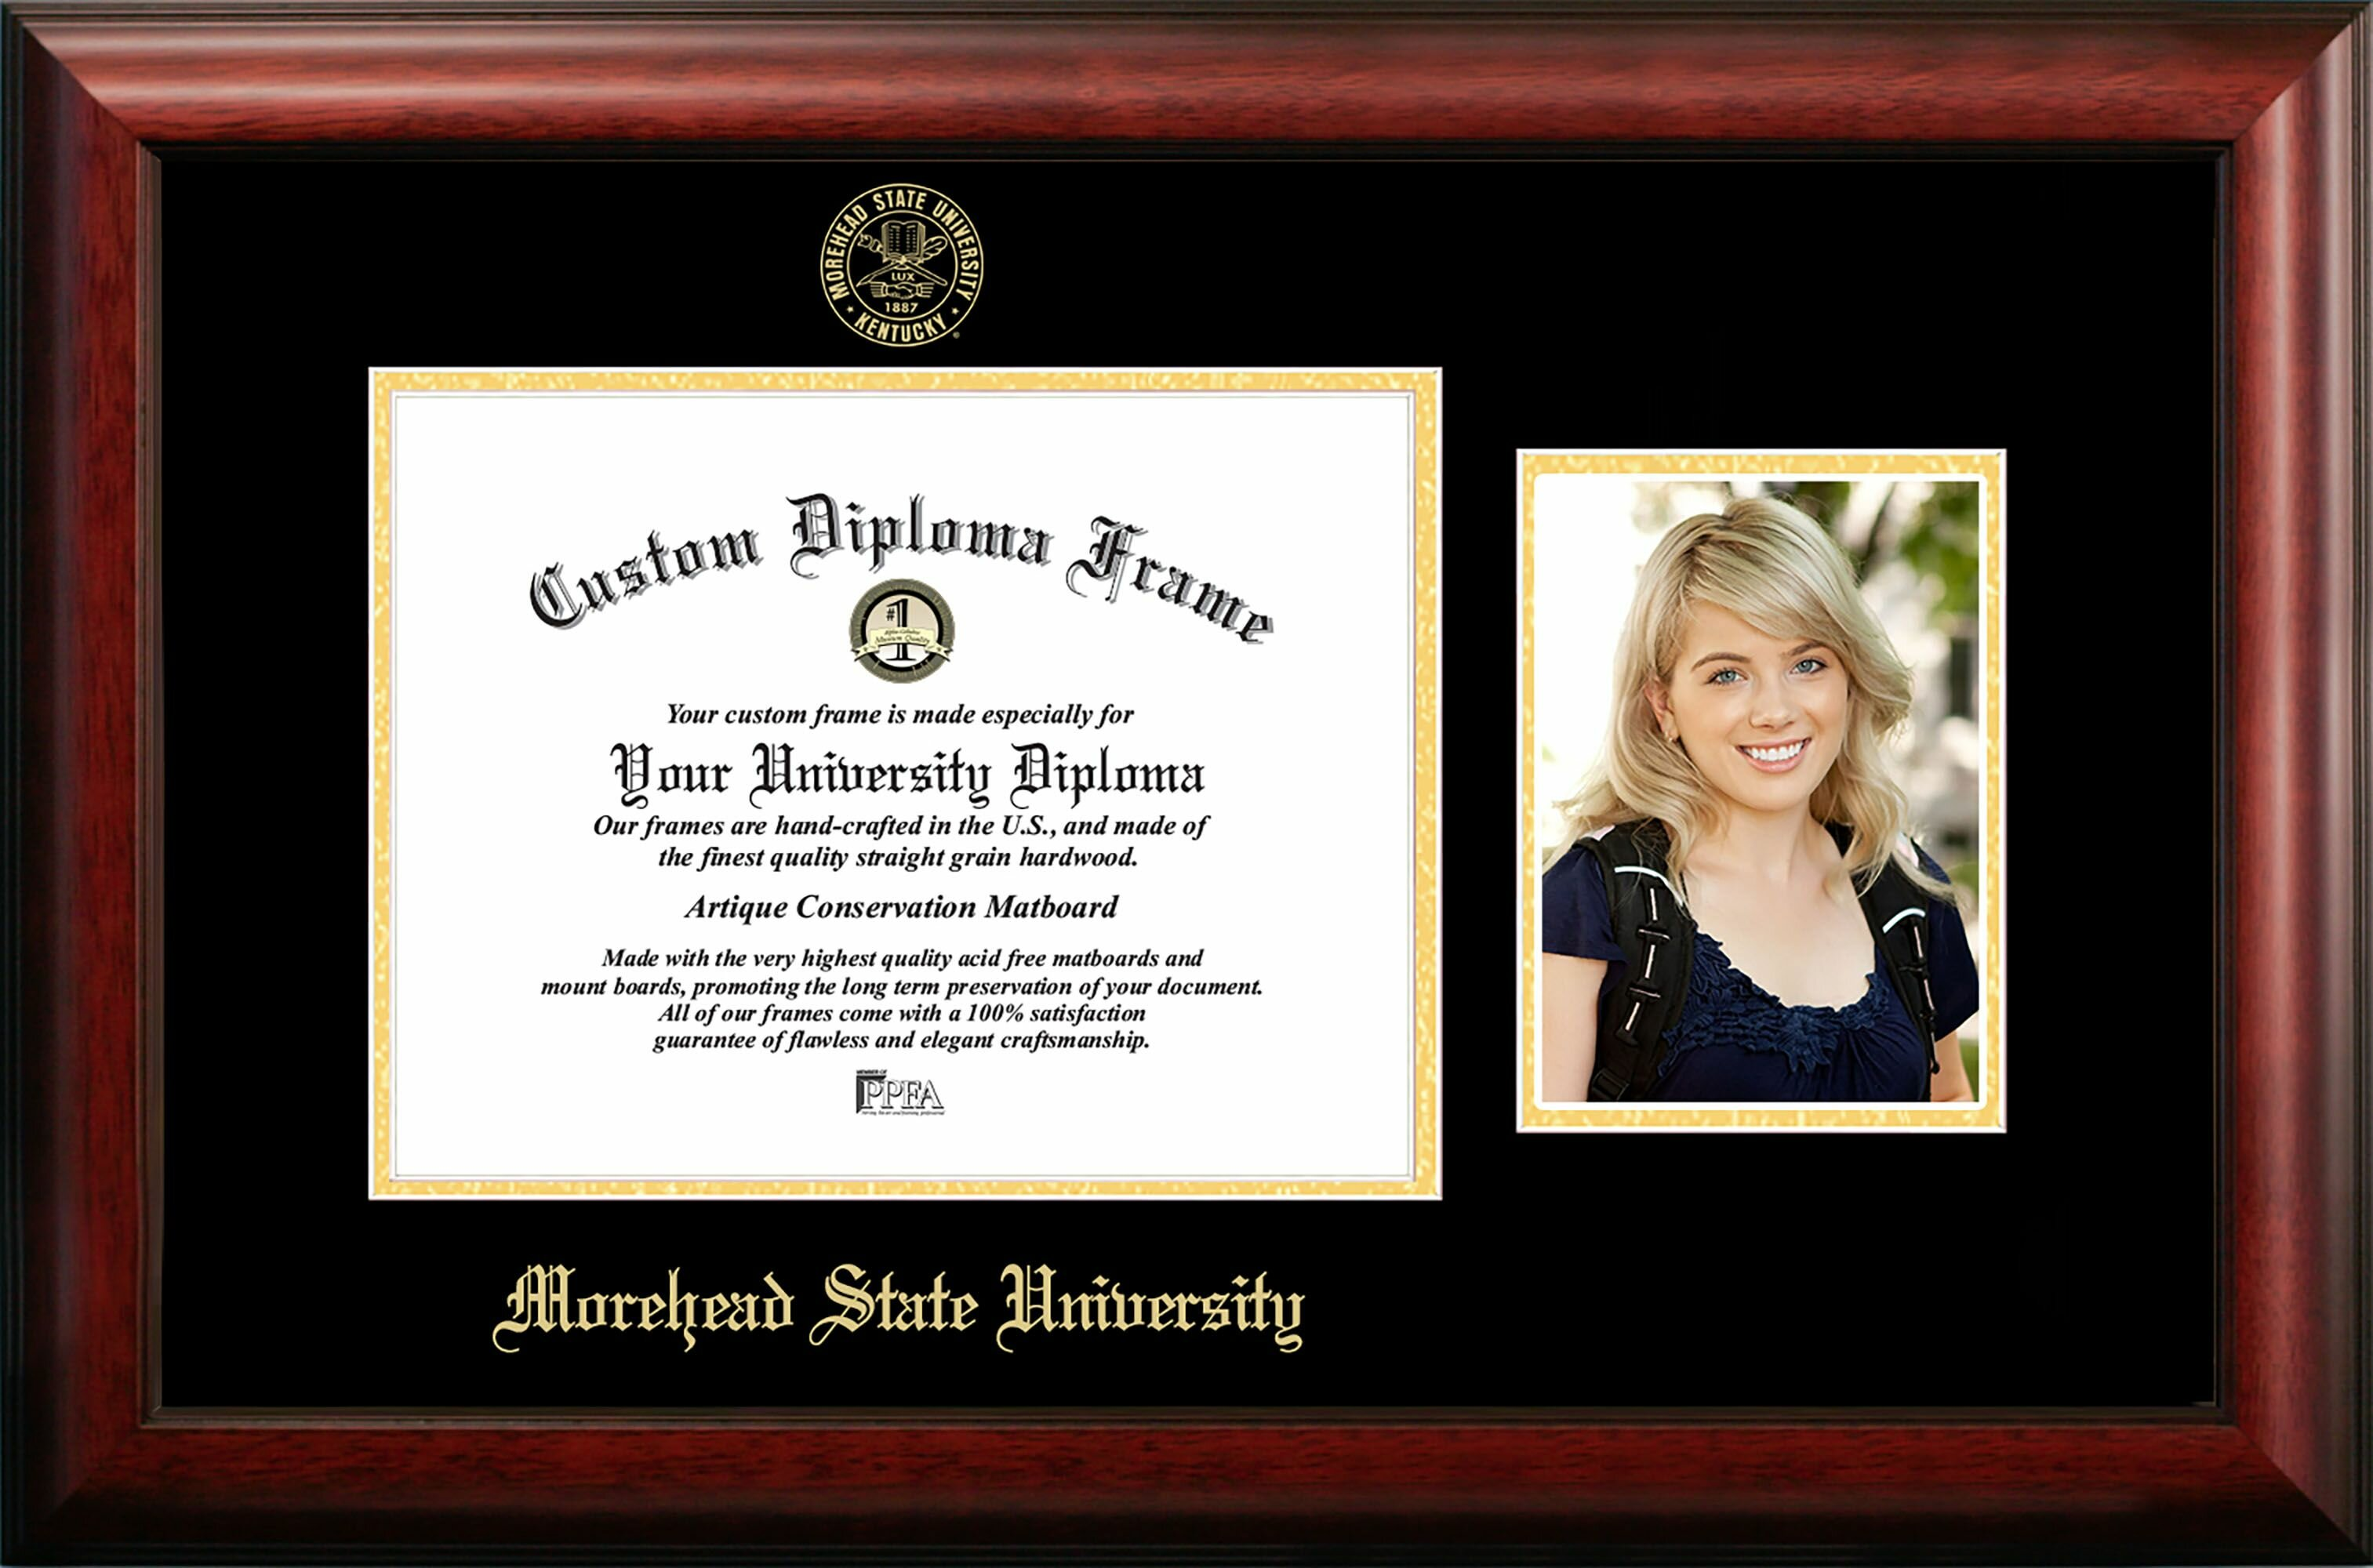 Campus Images Morehead State University Embossed Diploma Picture Frame Wayfair